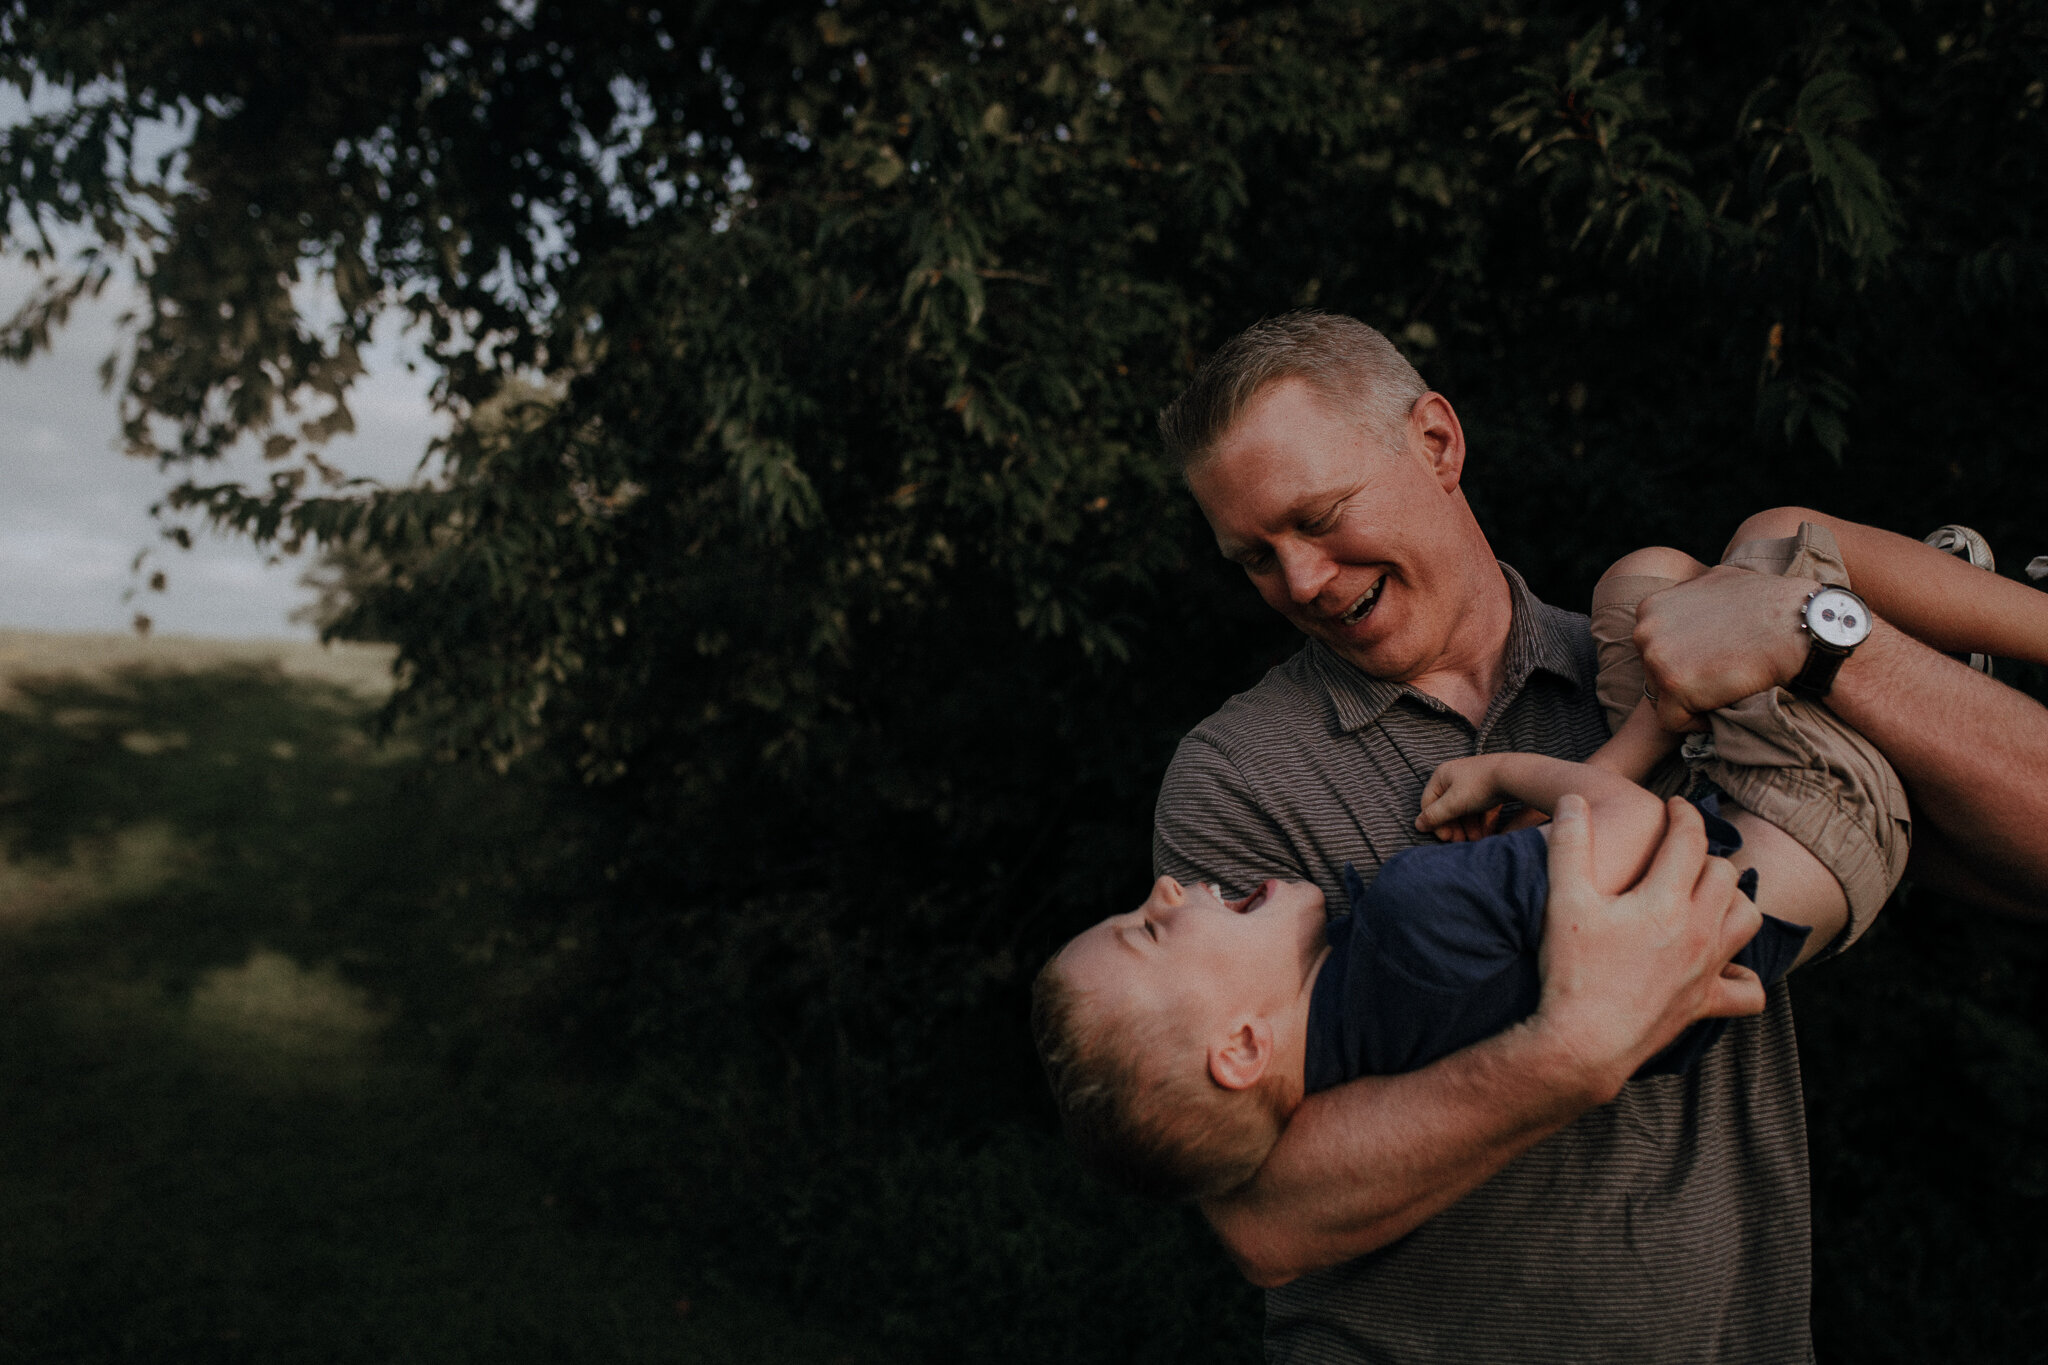 father son upside down giggles brothers Ida Lee Leesburg Loudoun Virginia Lifestyle Documentary Maternity Family Marti Austin Photography